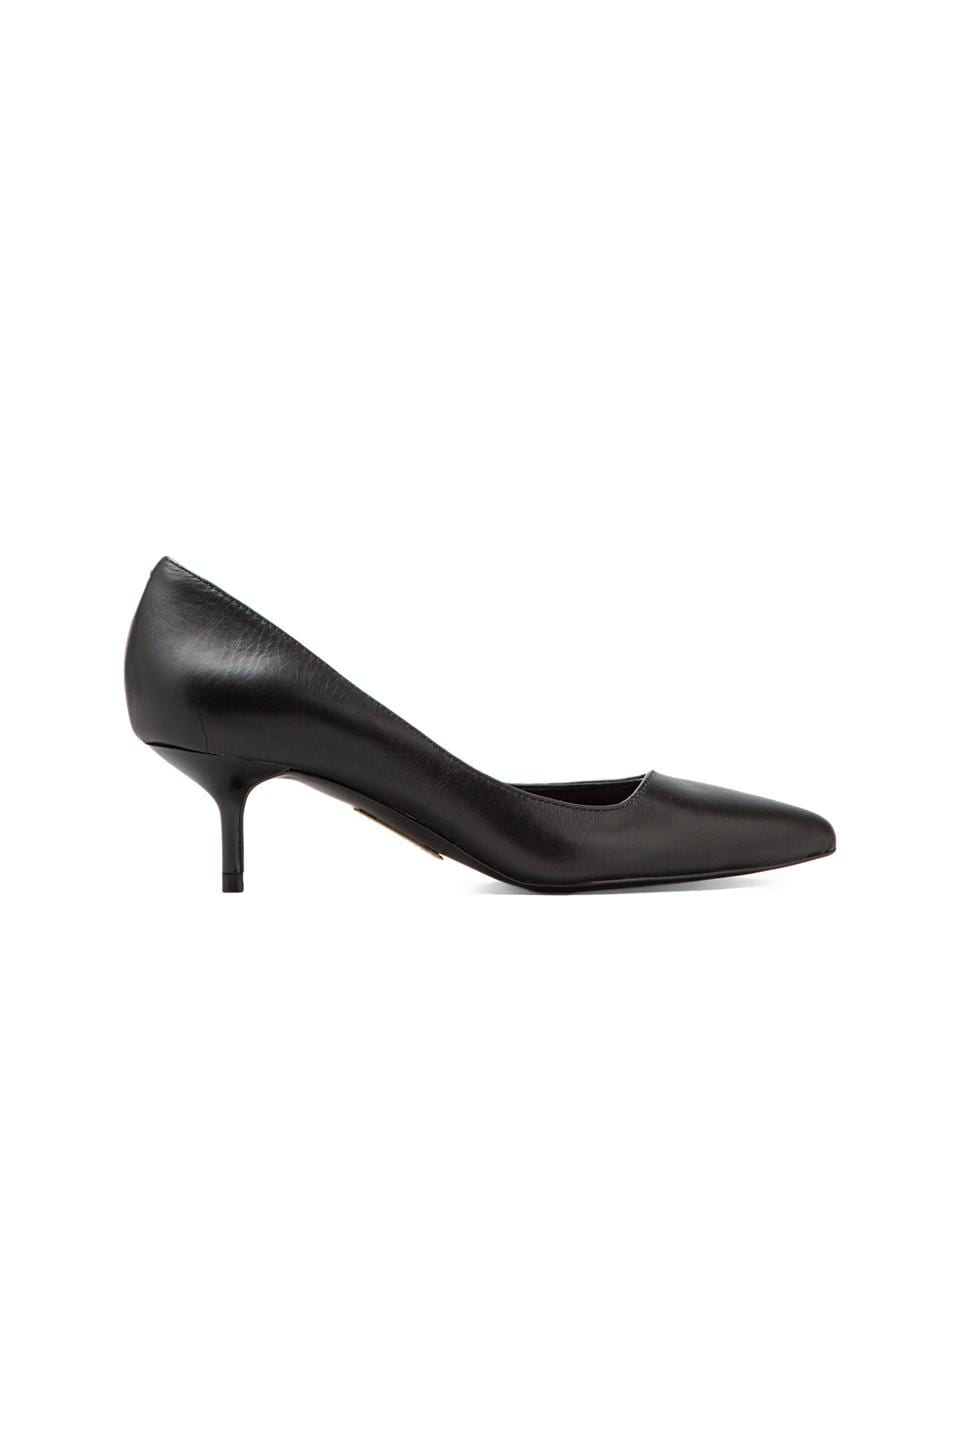 Boutique 9 Sophia Heel in Black